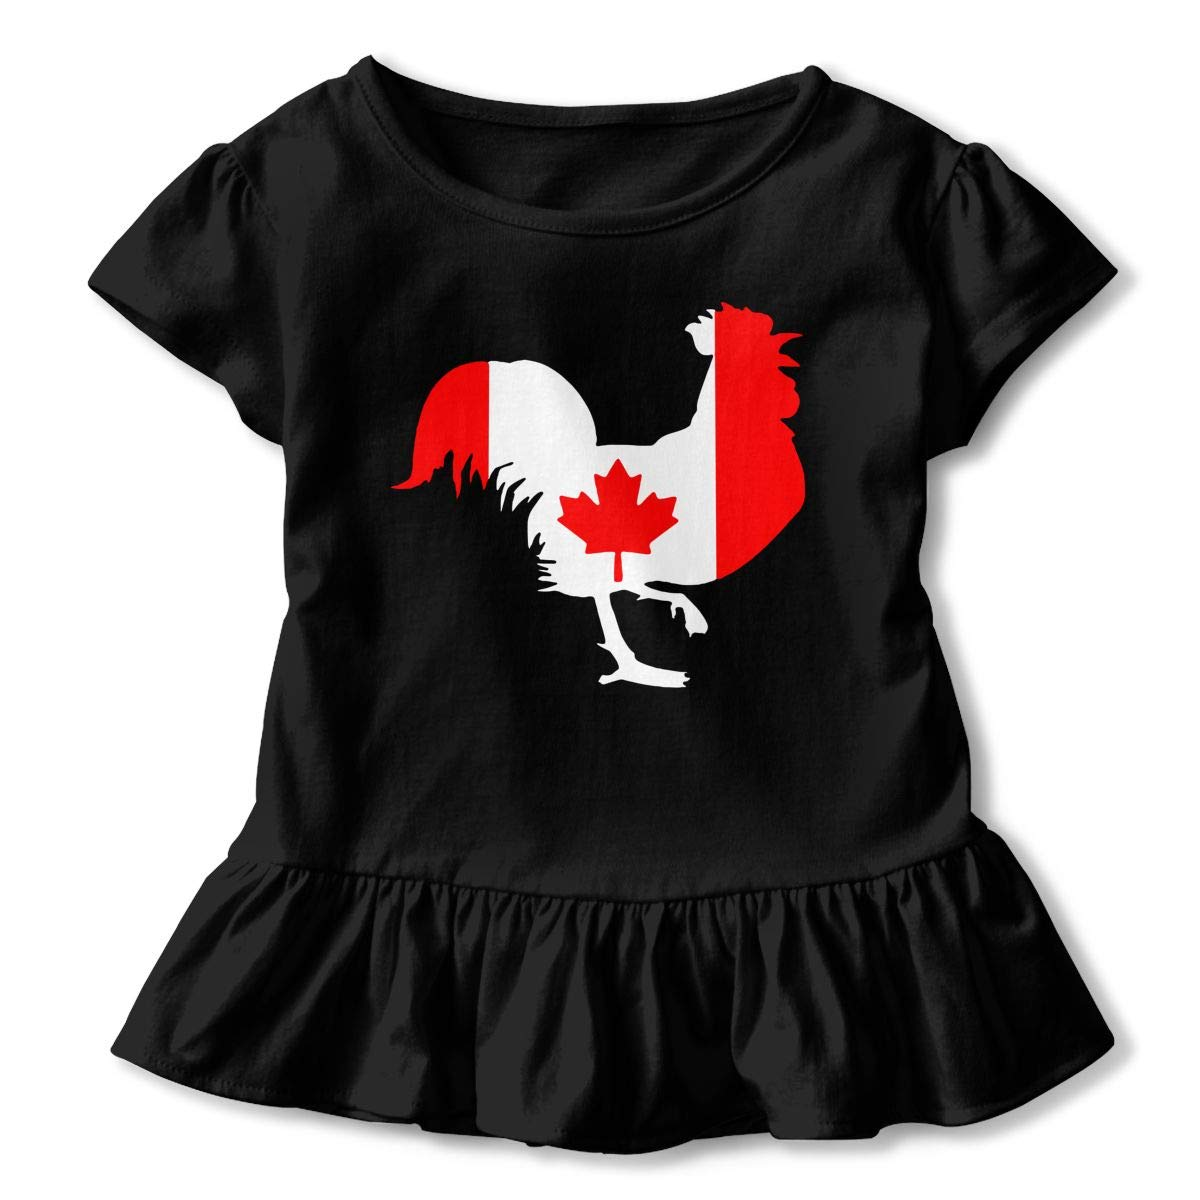 HYBDX9T Little Girls Rooster with Canada Flag Funny Short Sleeve Cotton T Shirts Basic Tops Tee Clothes